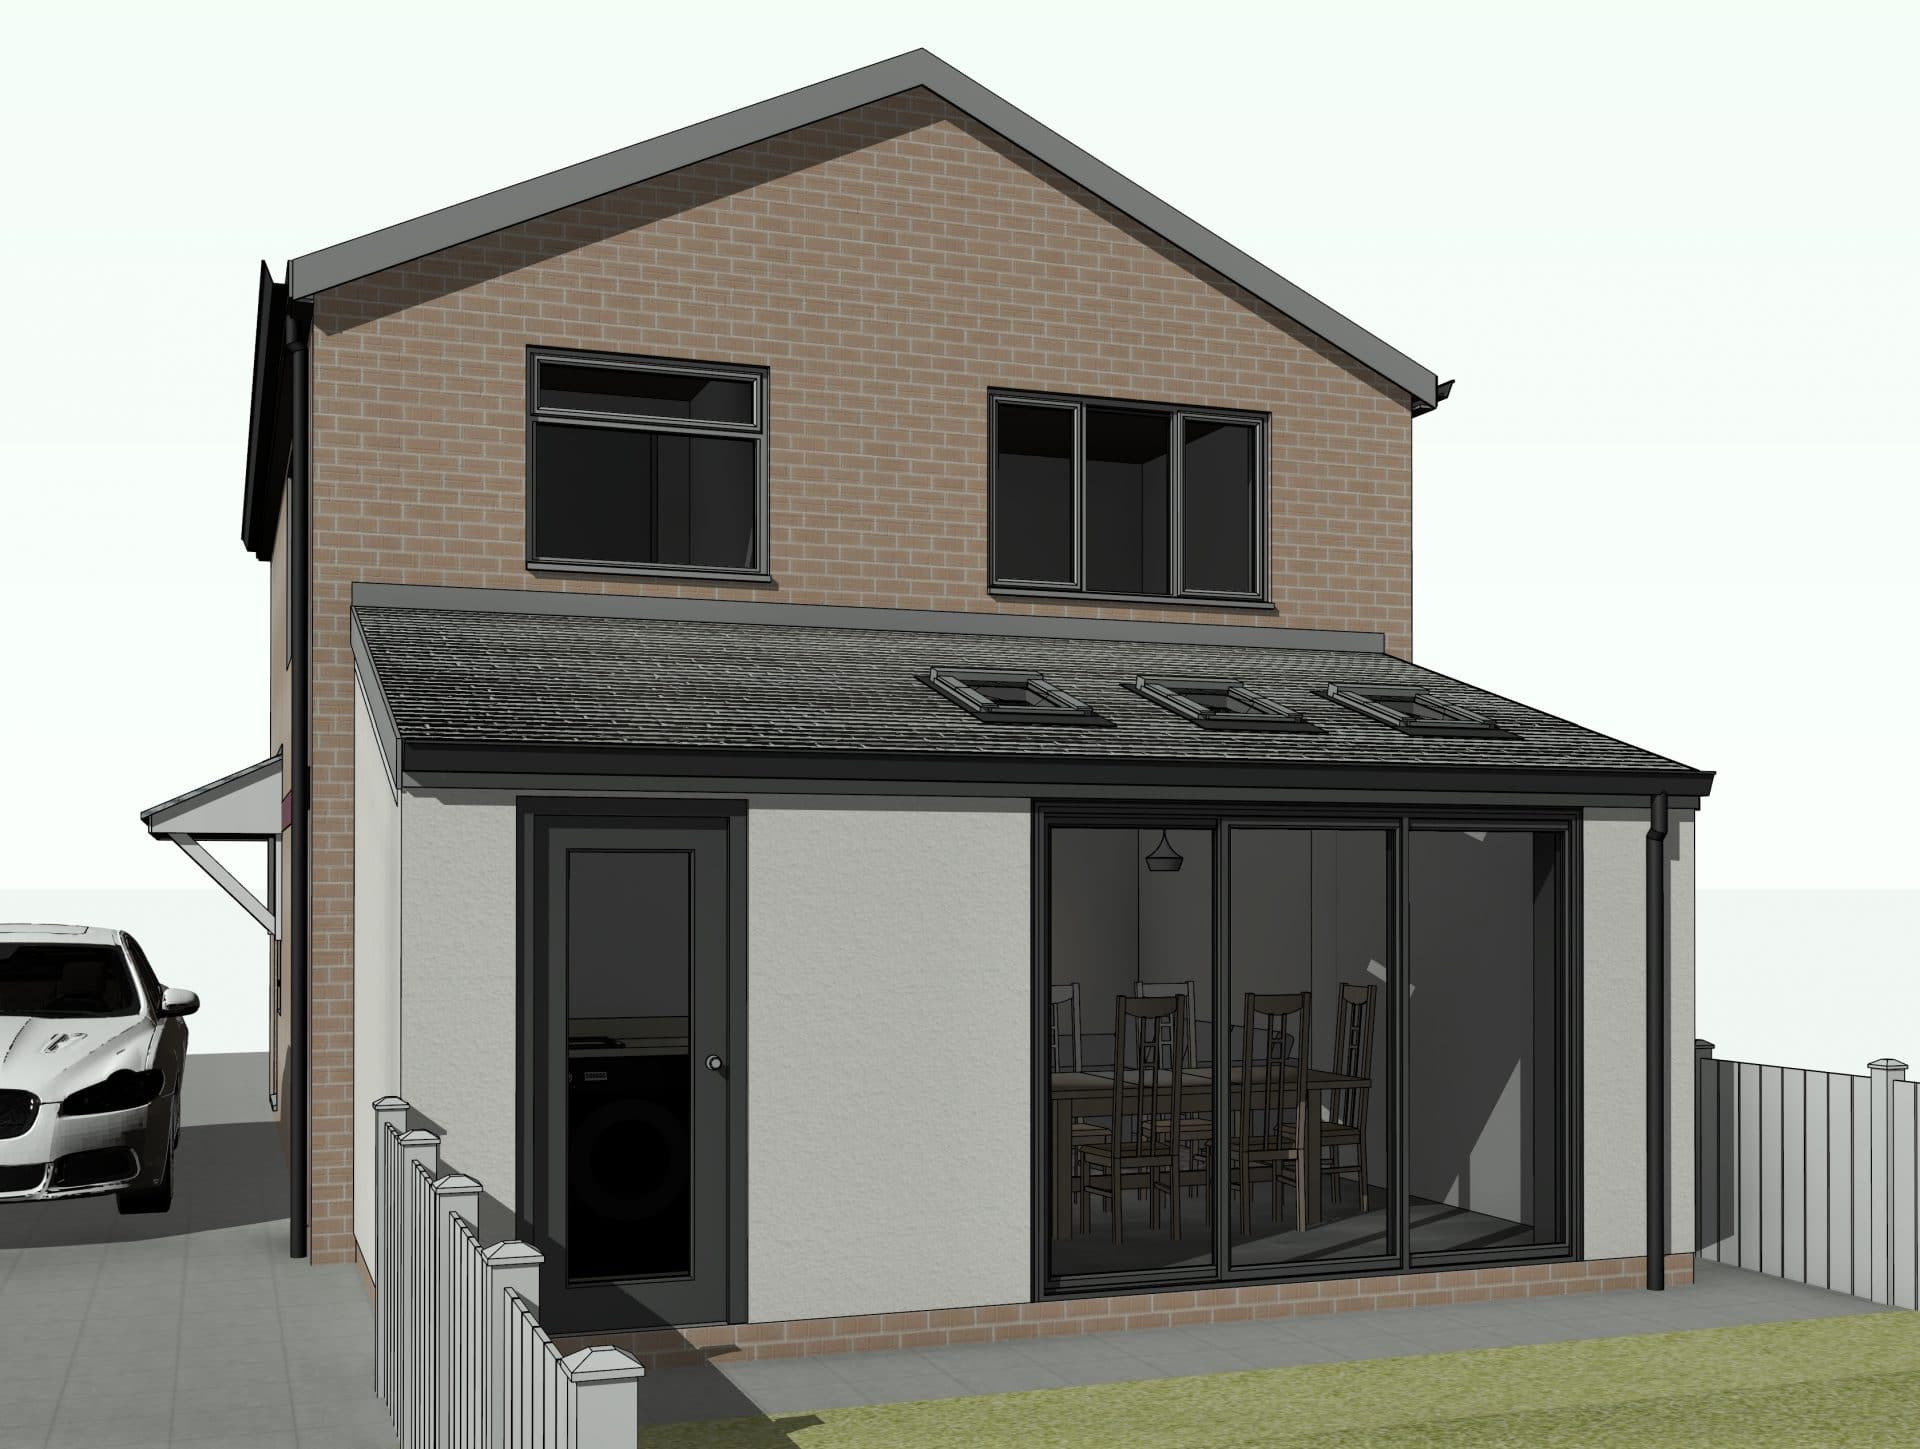 External 3D Visualisation of single storey extension